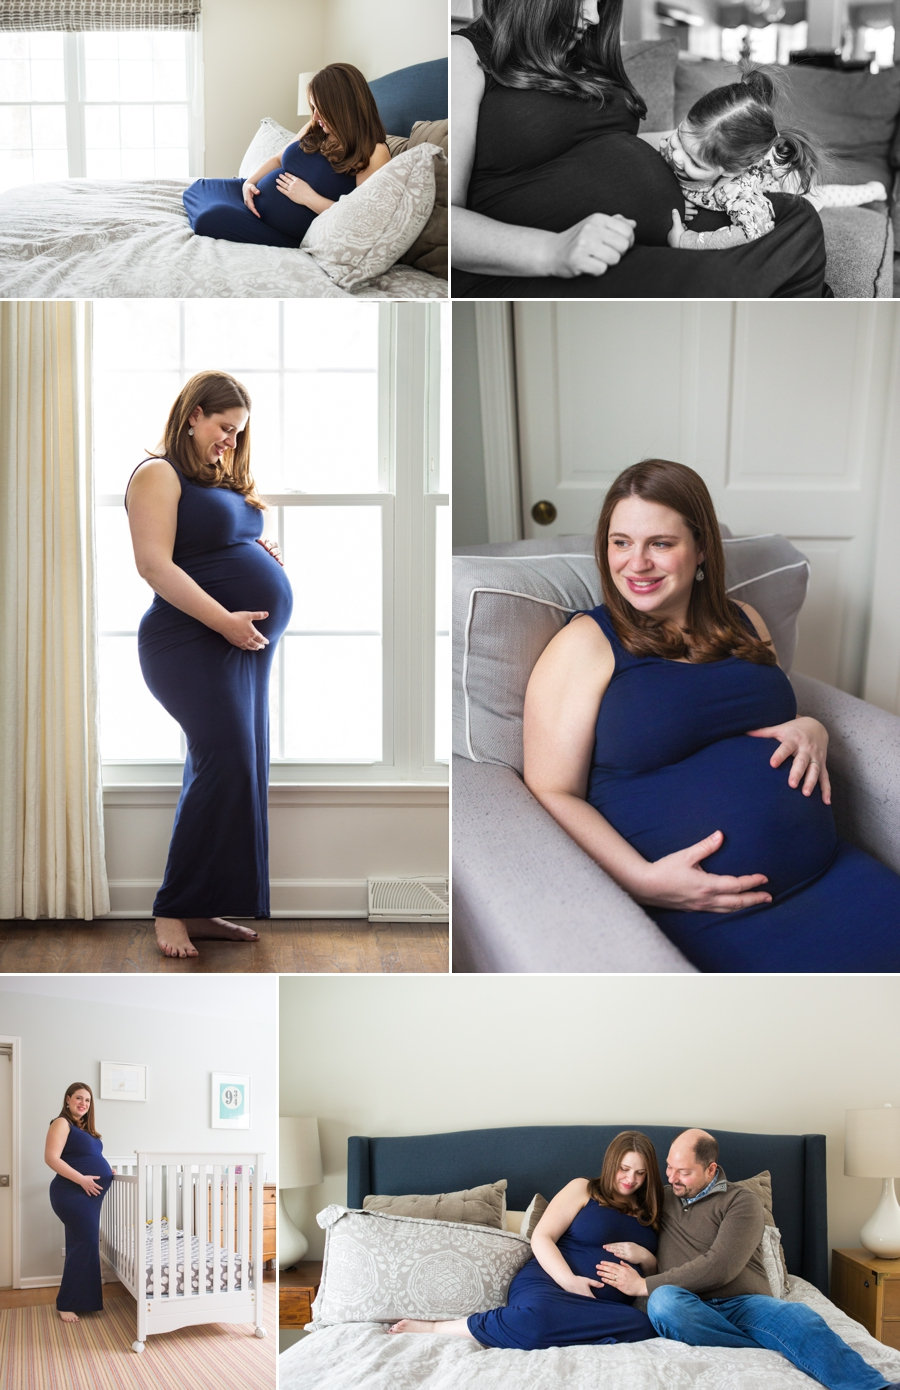 065a432b08b0f In-Home Maternity Session   Nicola Levine Photography